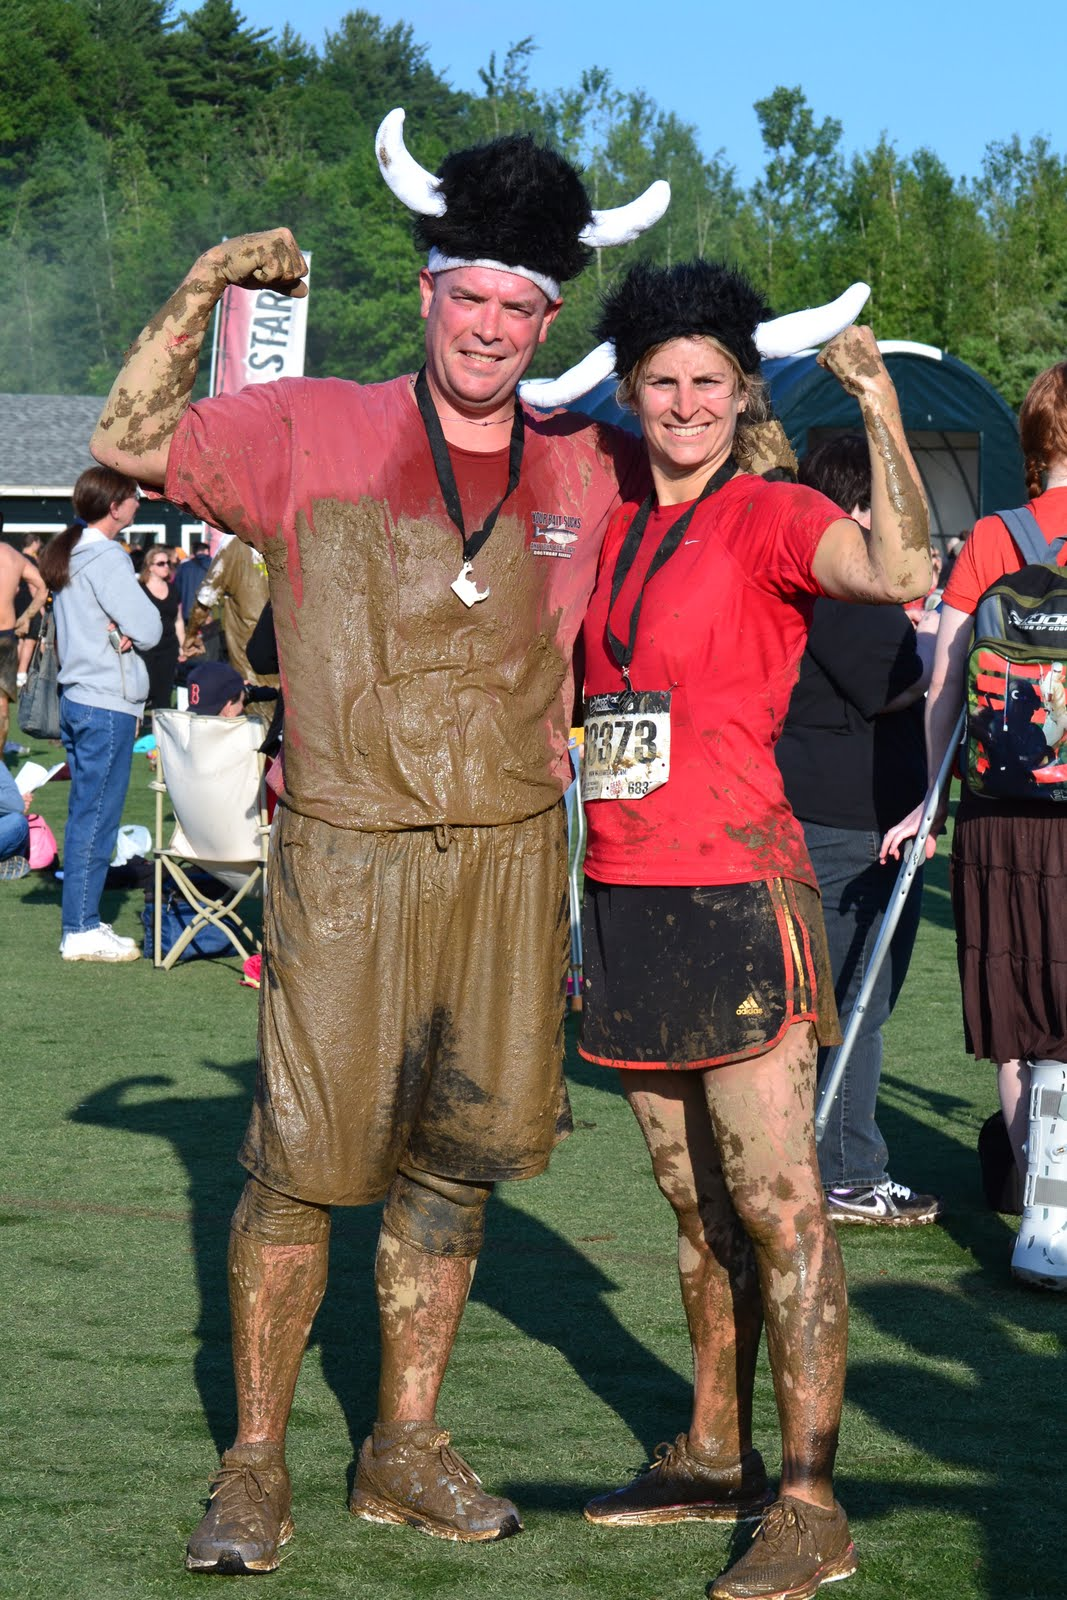 Can Kids Run The Warrior Dash